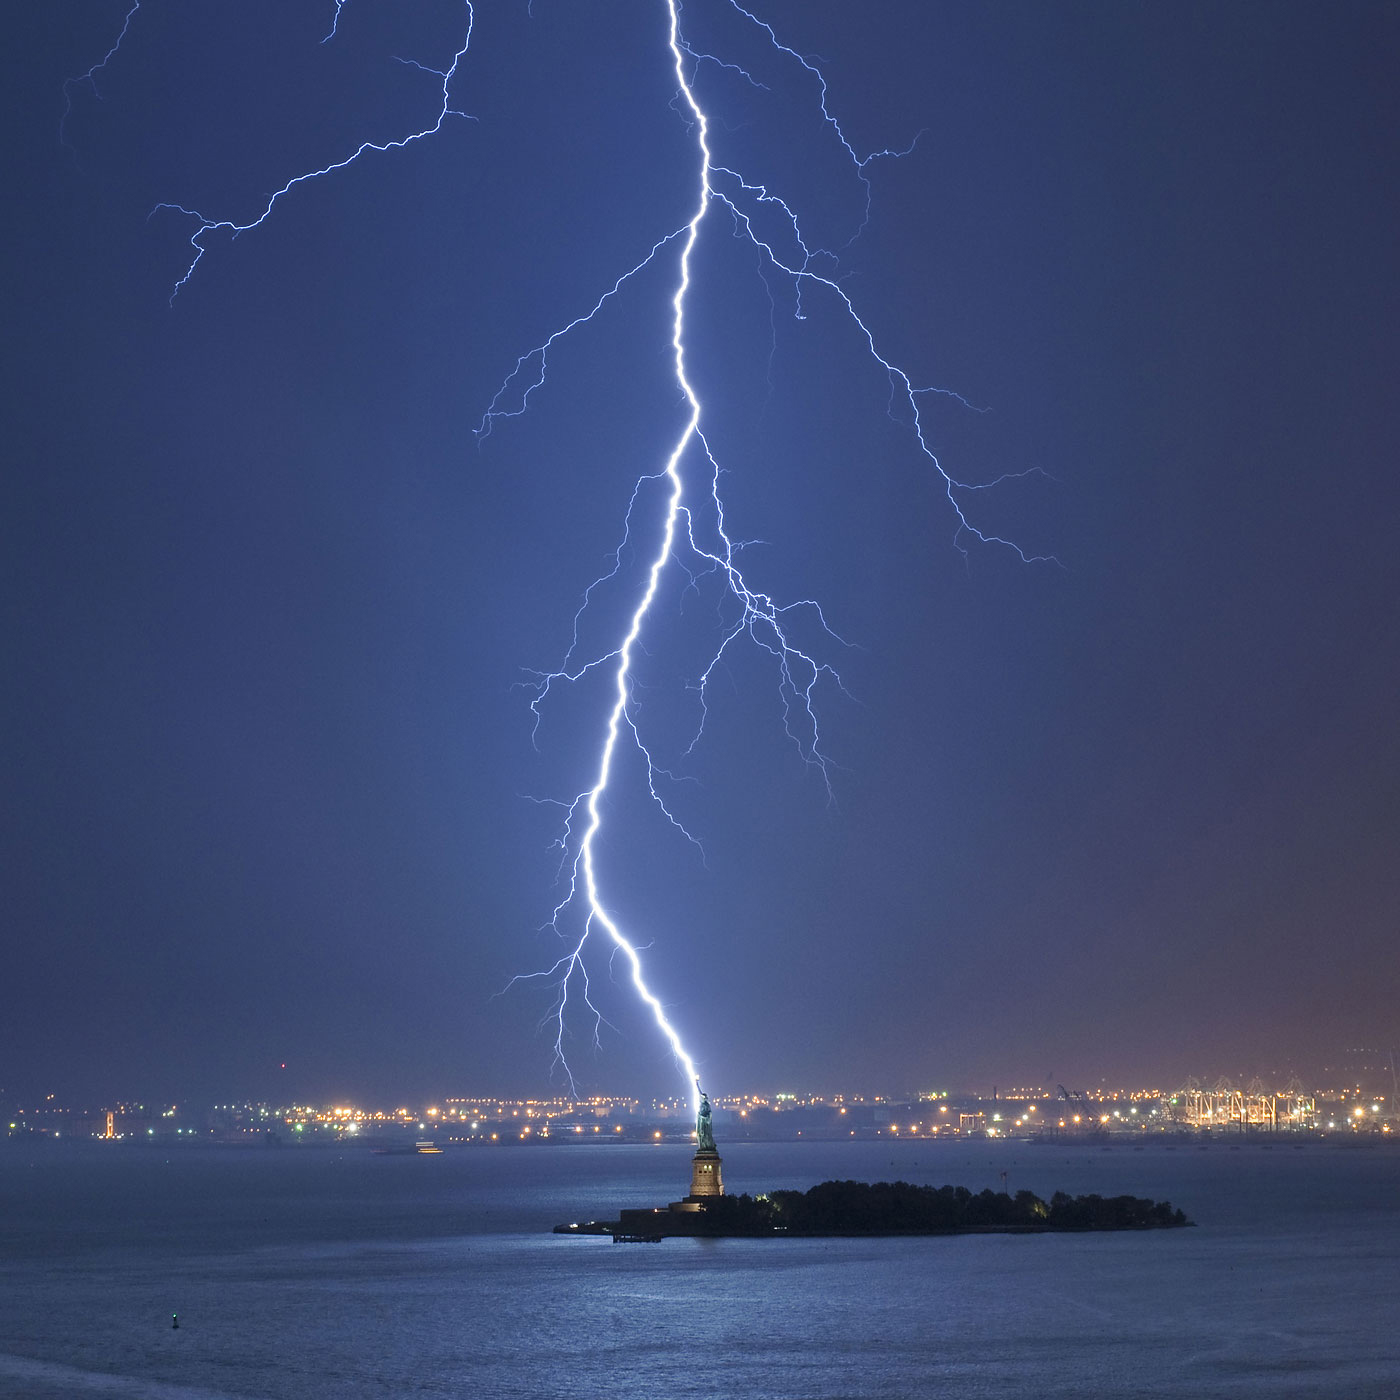 Lightning strikes near the Statue of Liberty in New York City, Oct. 11, 2010.